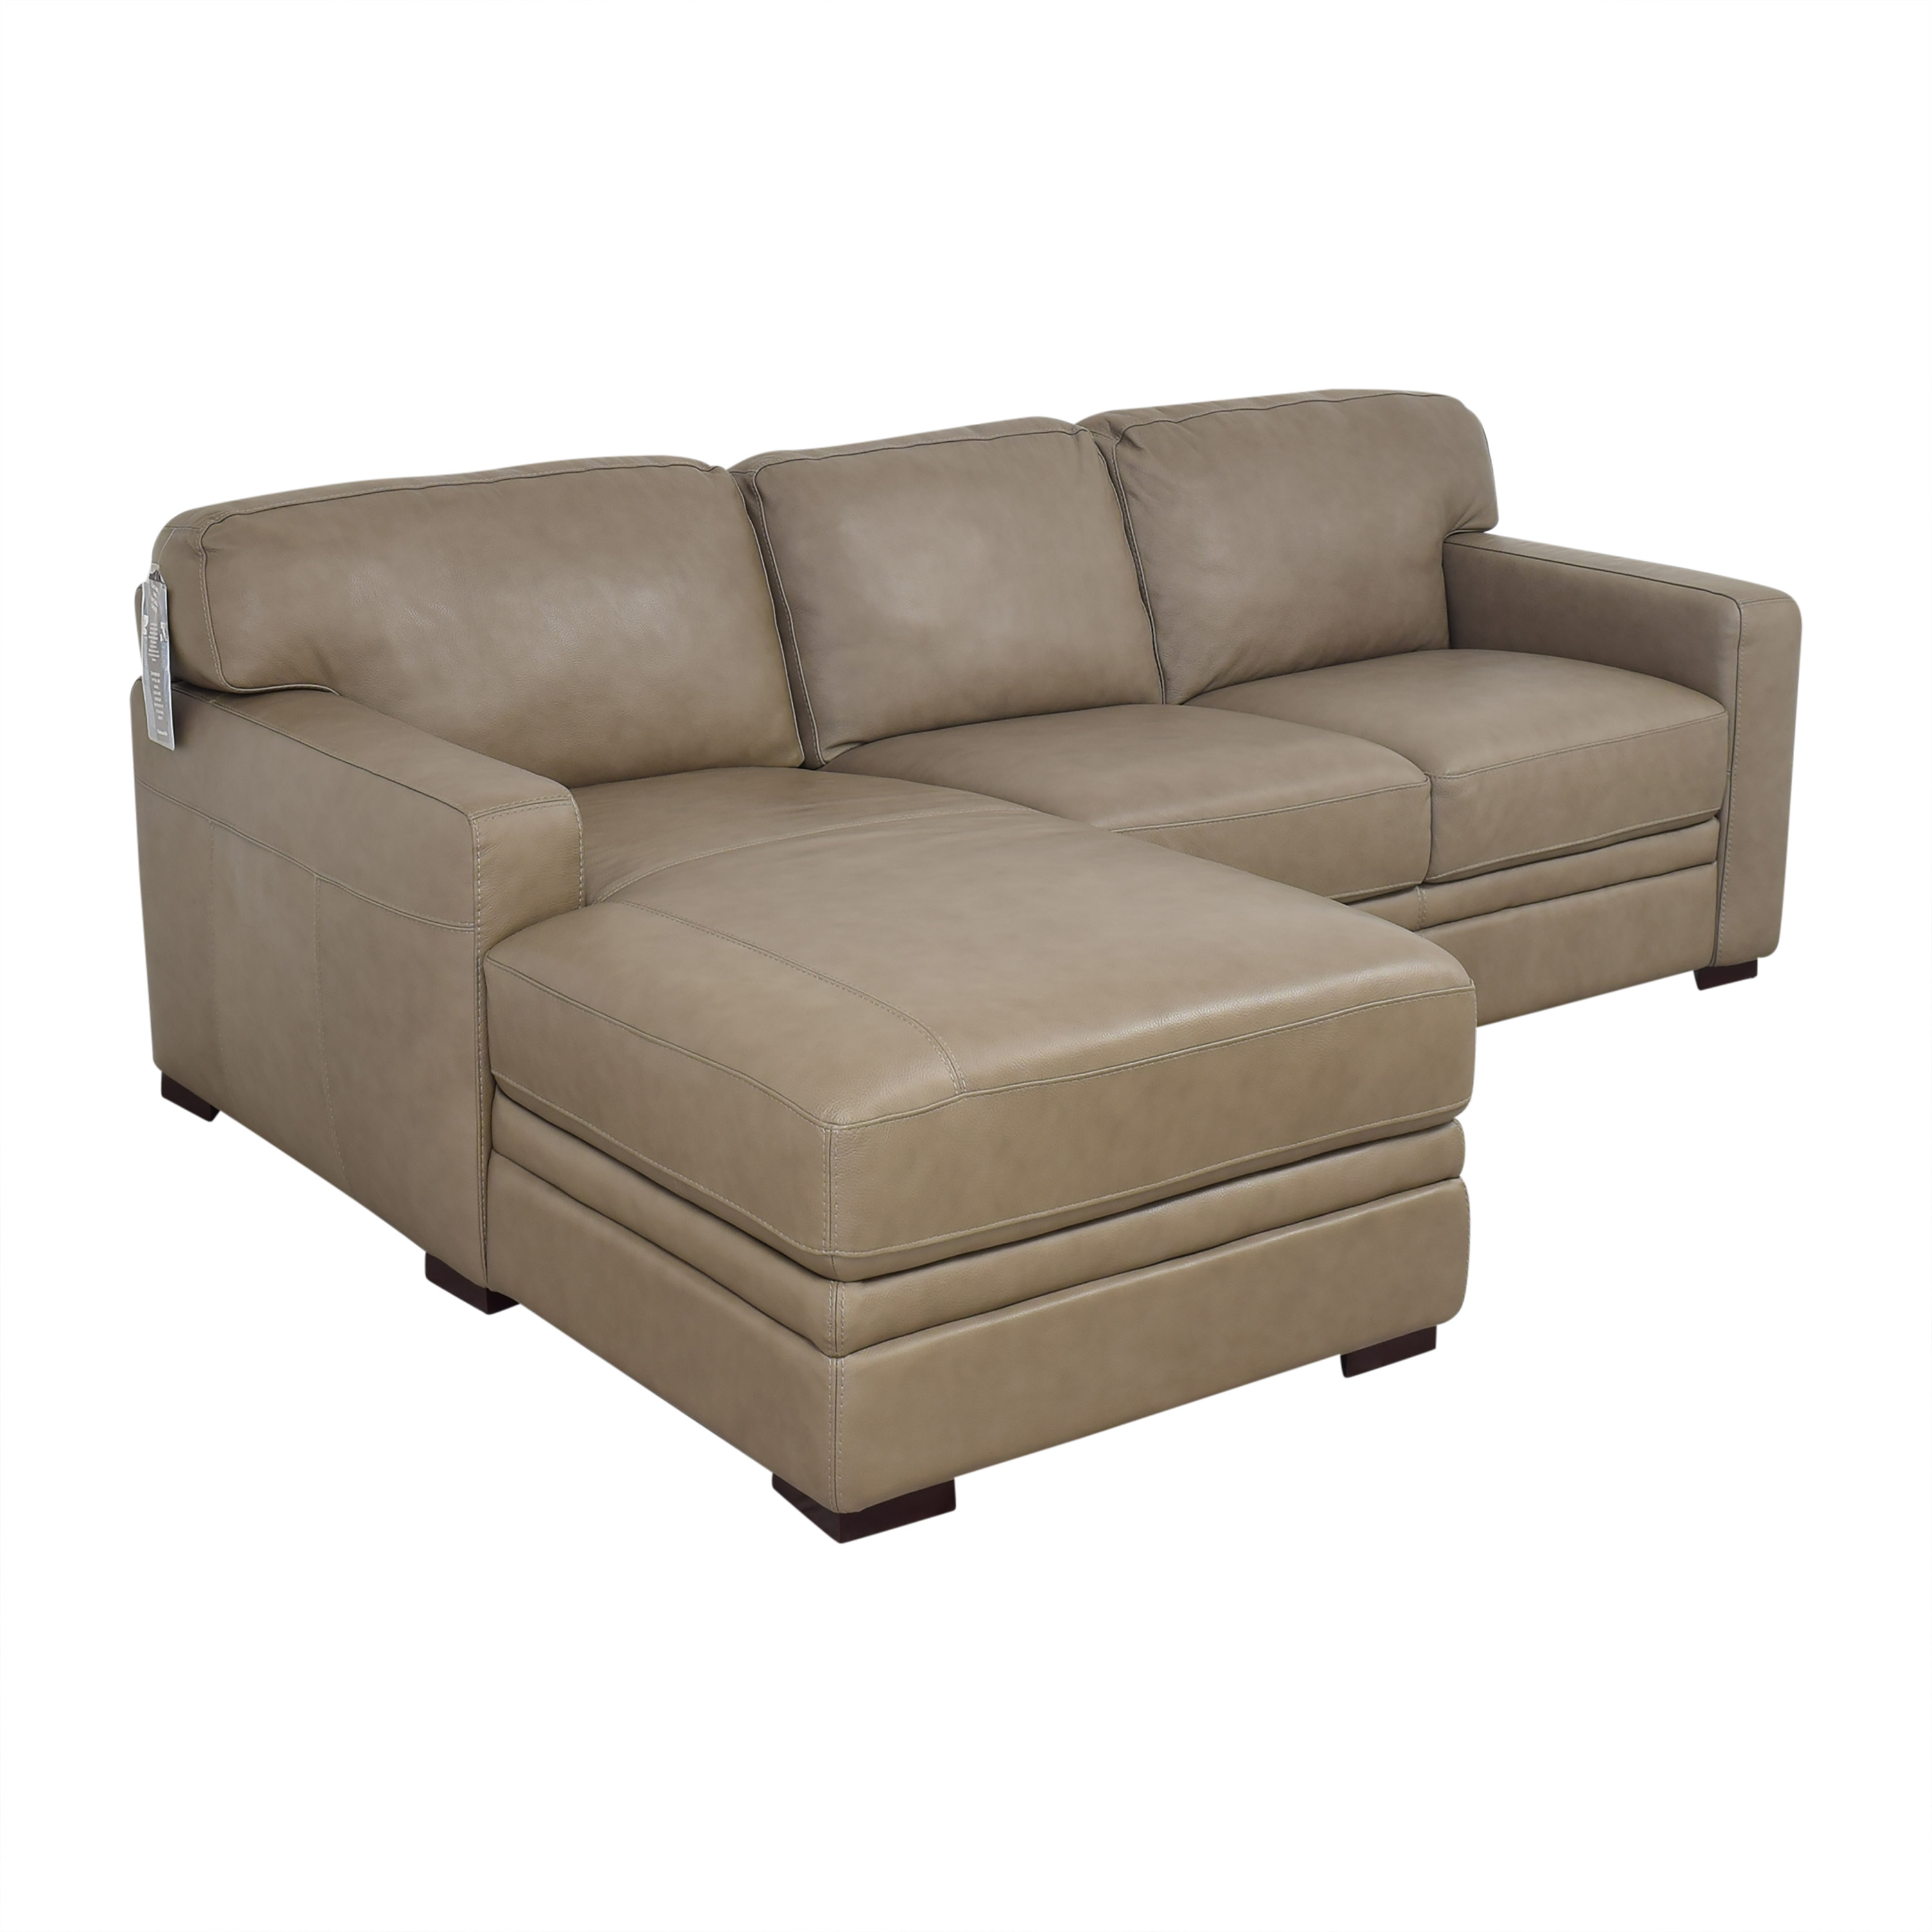 buy Macy's Avenell Two Piece Chaise Sectional Sofa Macy's Sectionals